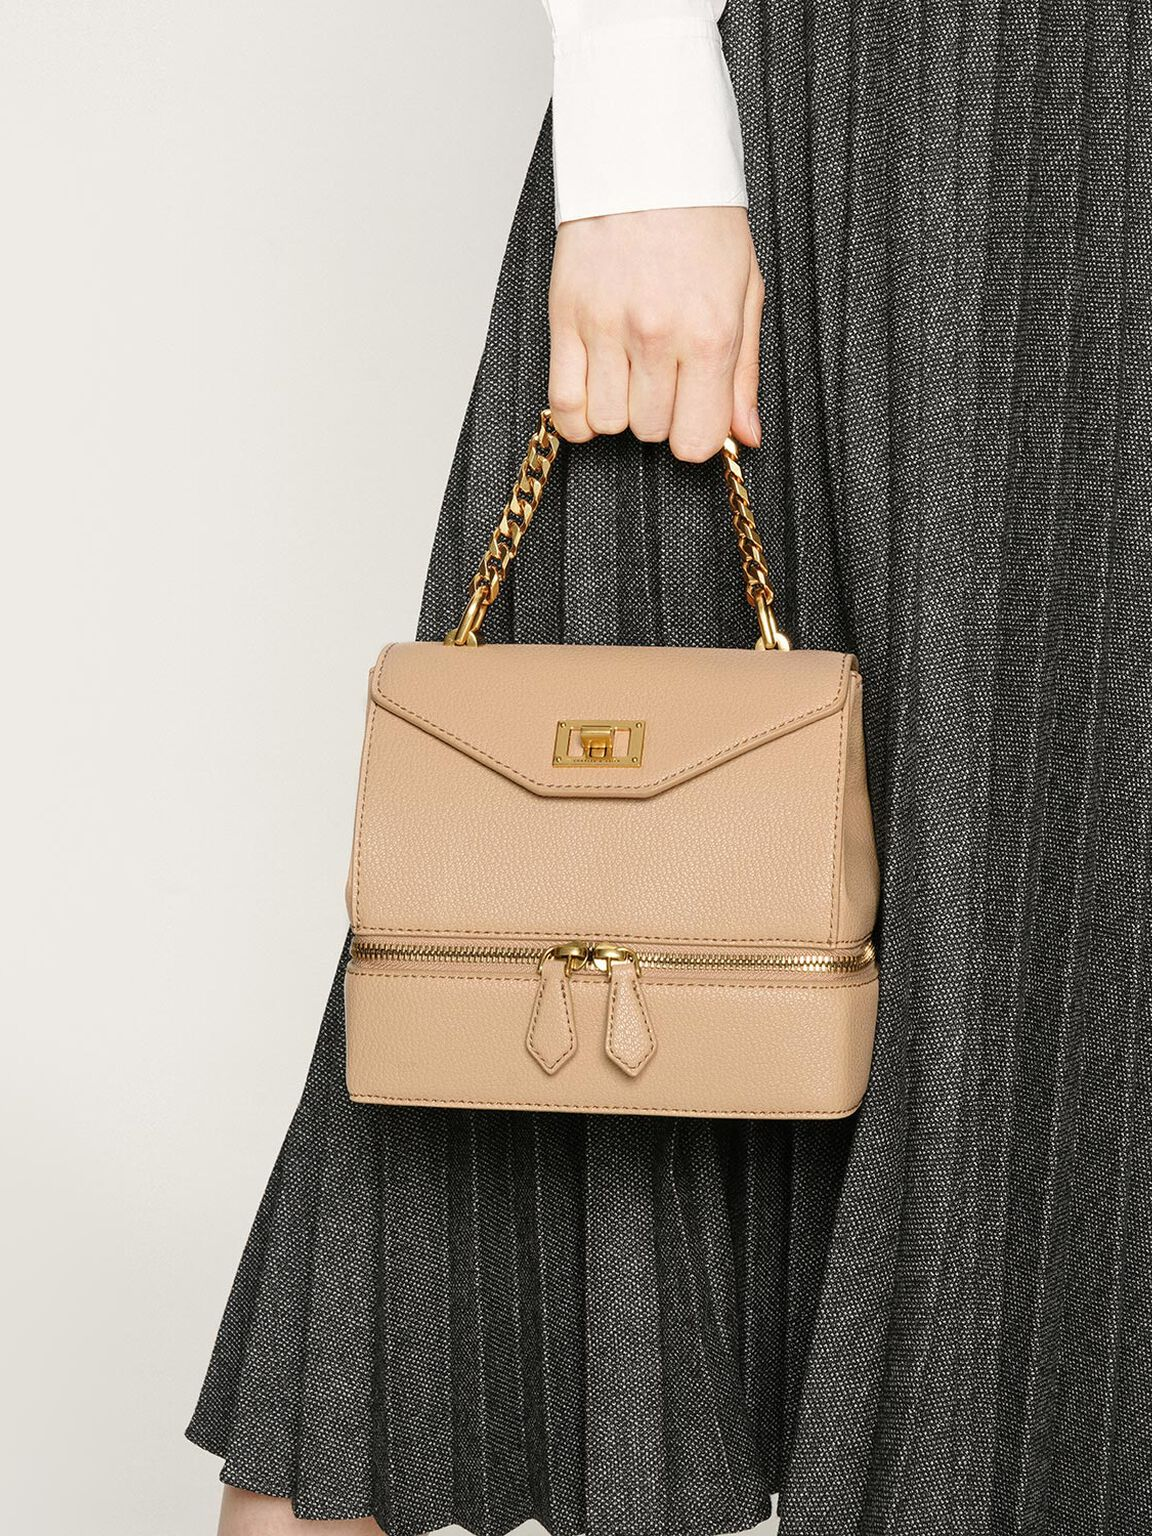 Two-Way Zip Handbag, Beige, hi-res